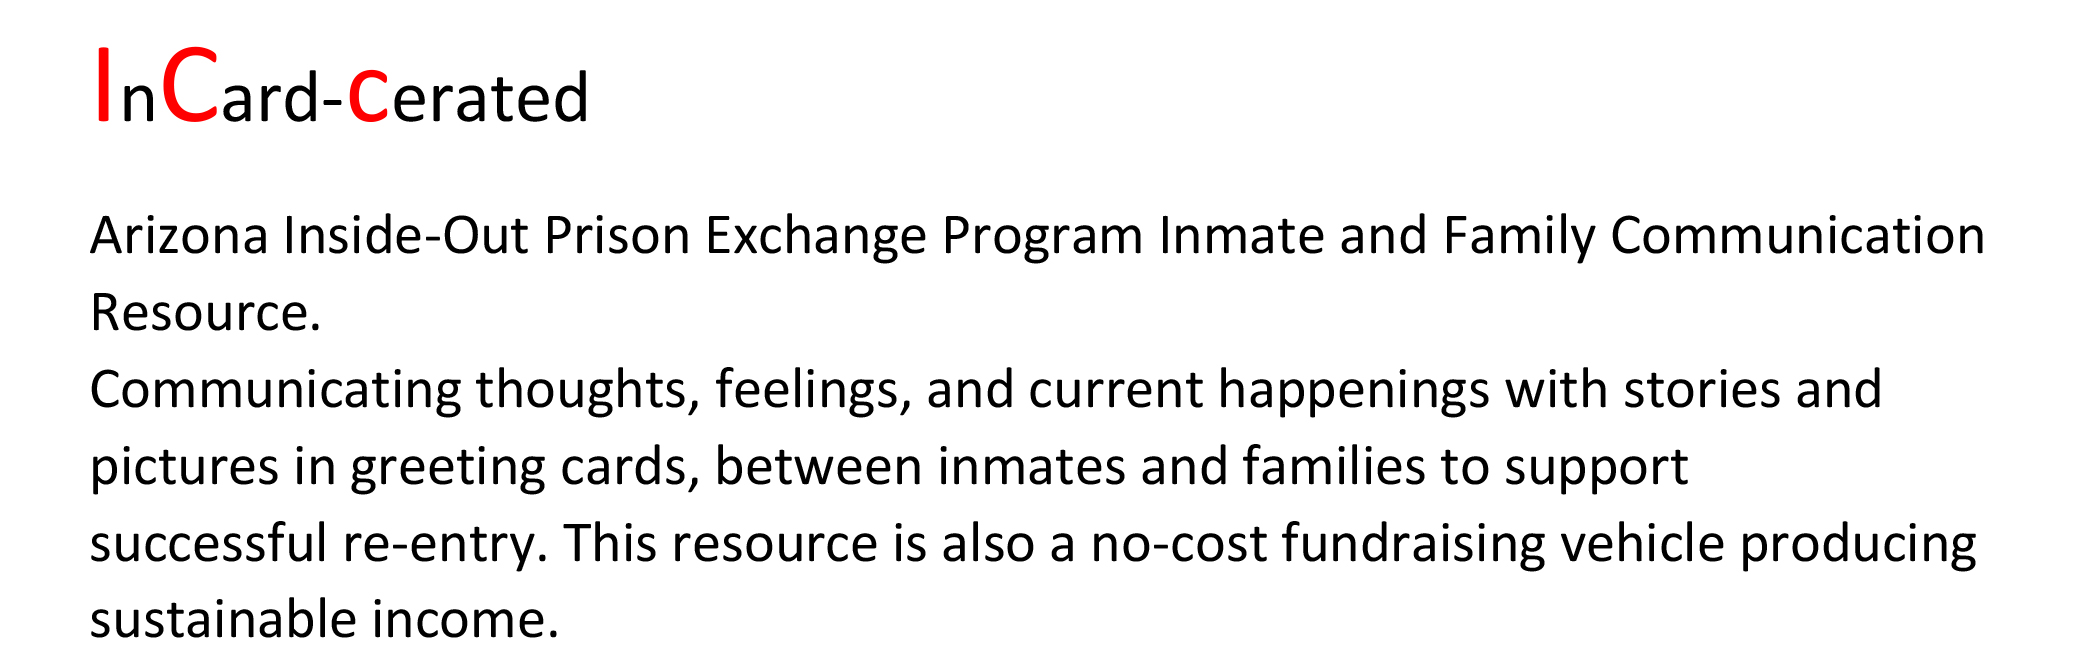 incardi-cerated-inmate-and-family-communication-resource..jpg